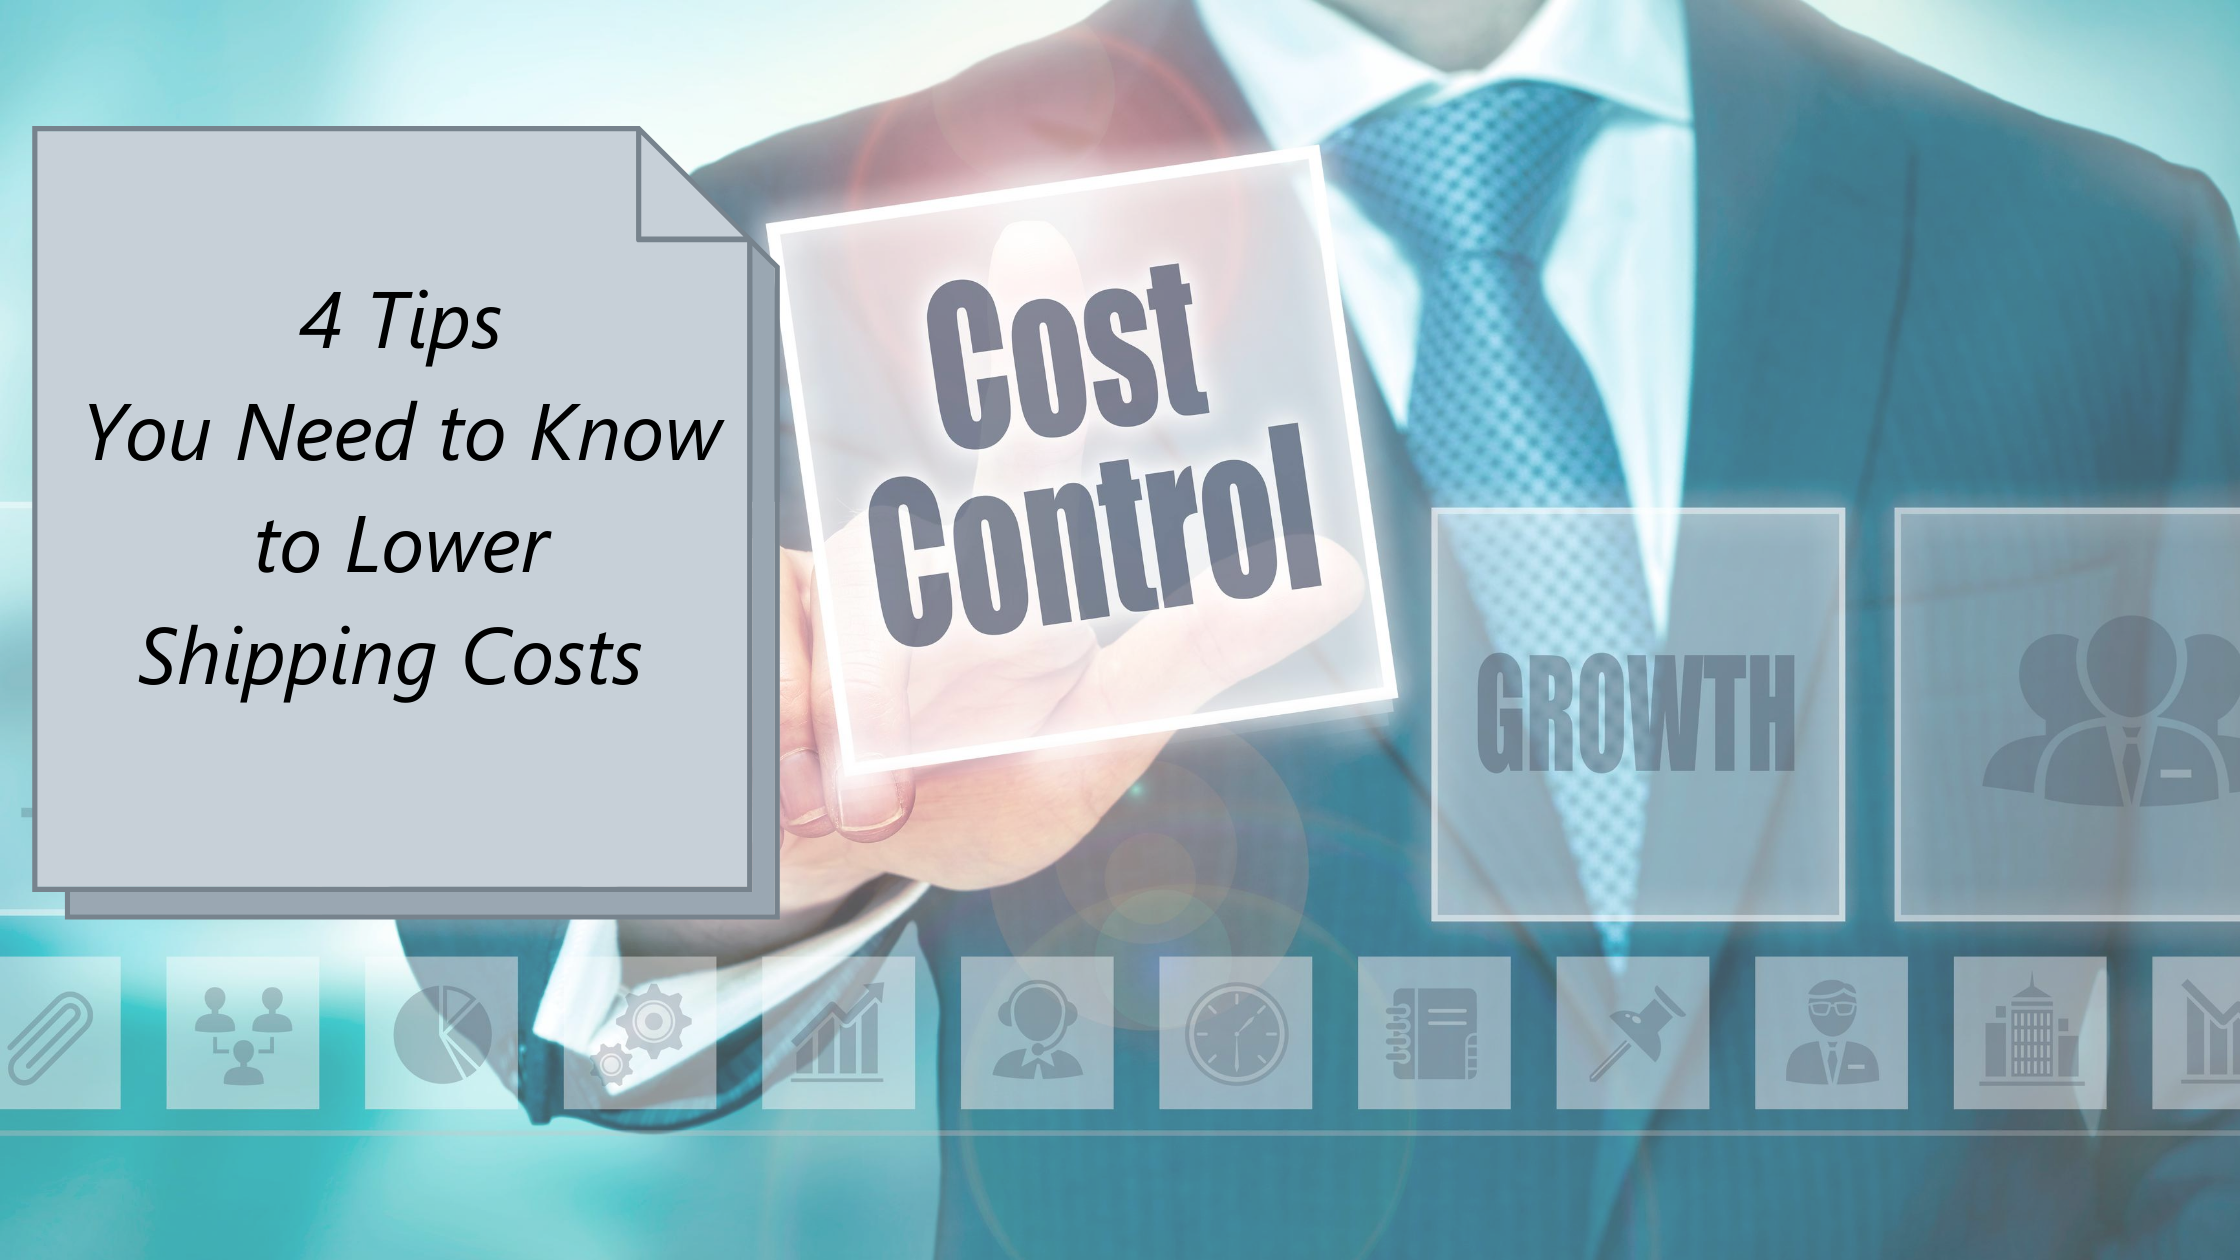 four-tips-you-need-to-know-to-lower-shipping-costs-image-of-man-in-suit-with-cost-control-icons